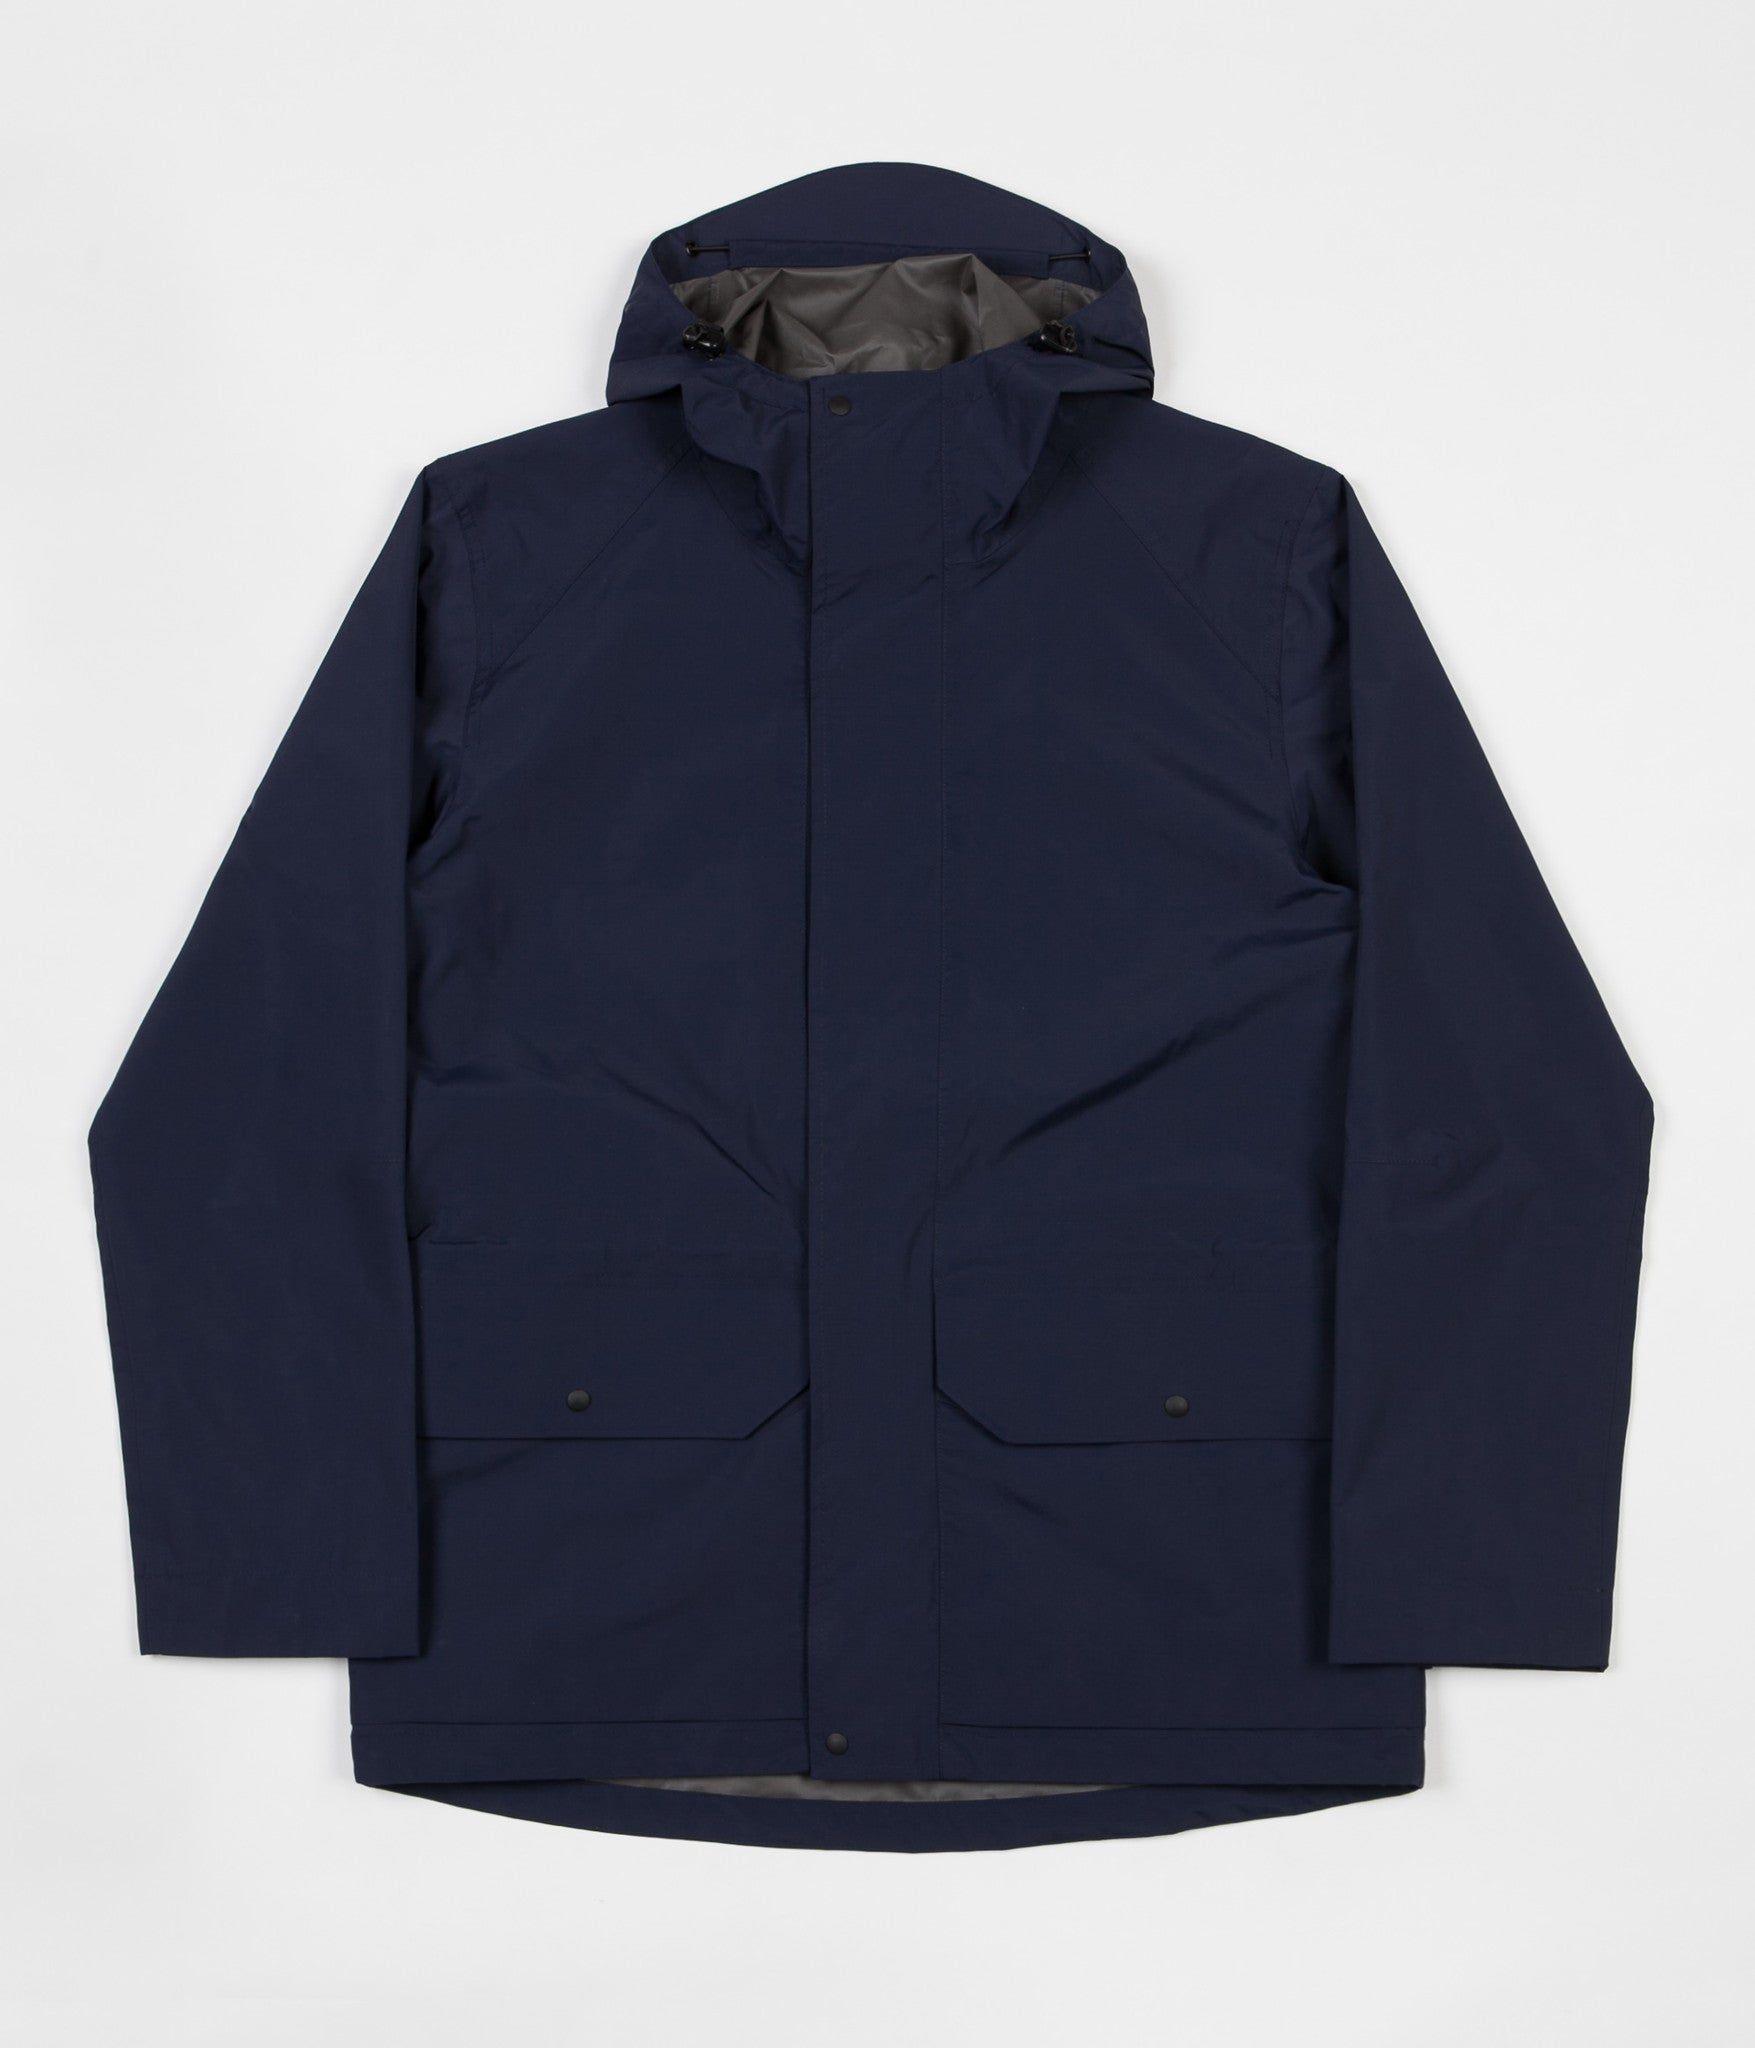 Finisterre Litus Jacket - Navy